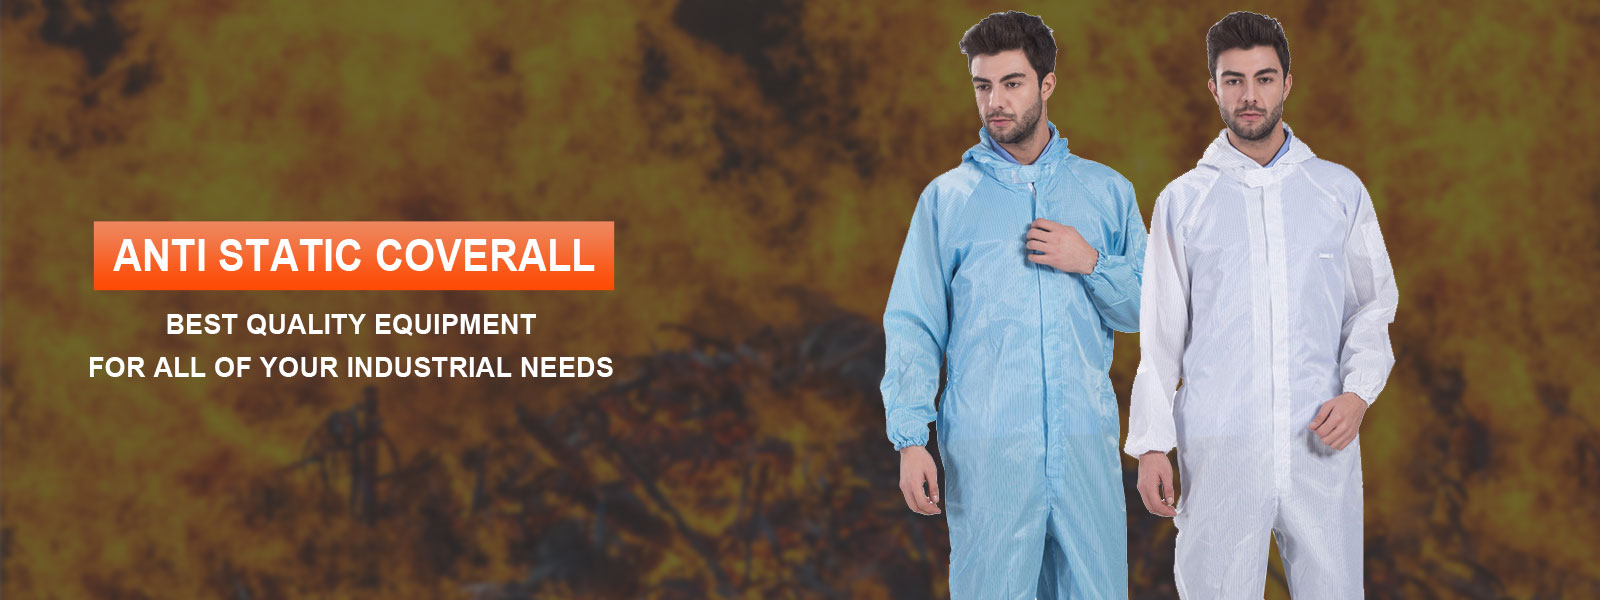 Anti Static Coverall Manufacturers in Portugal